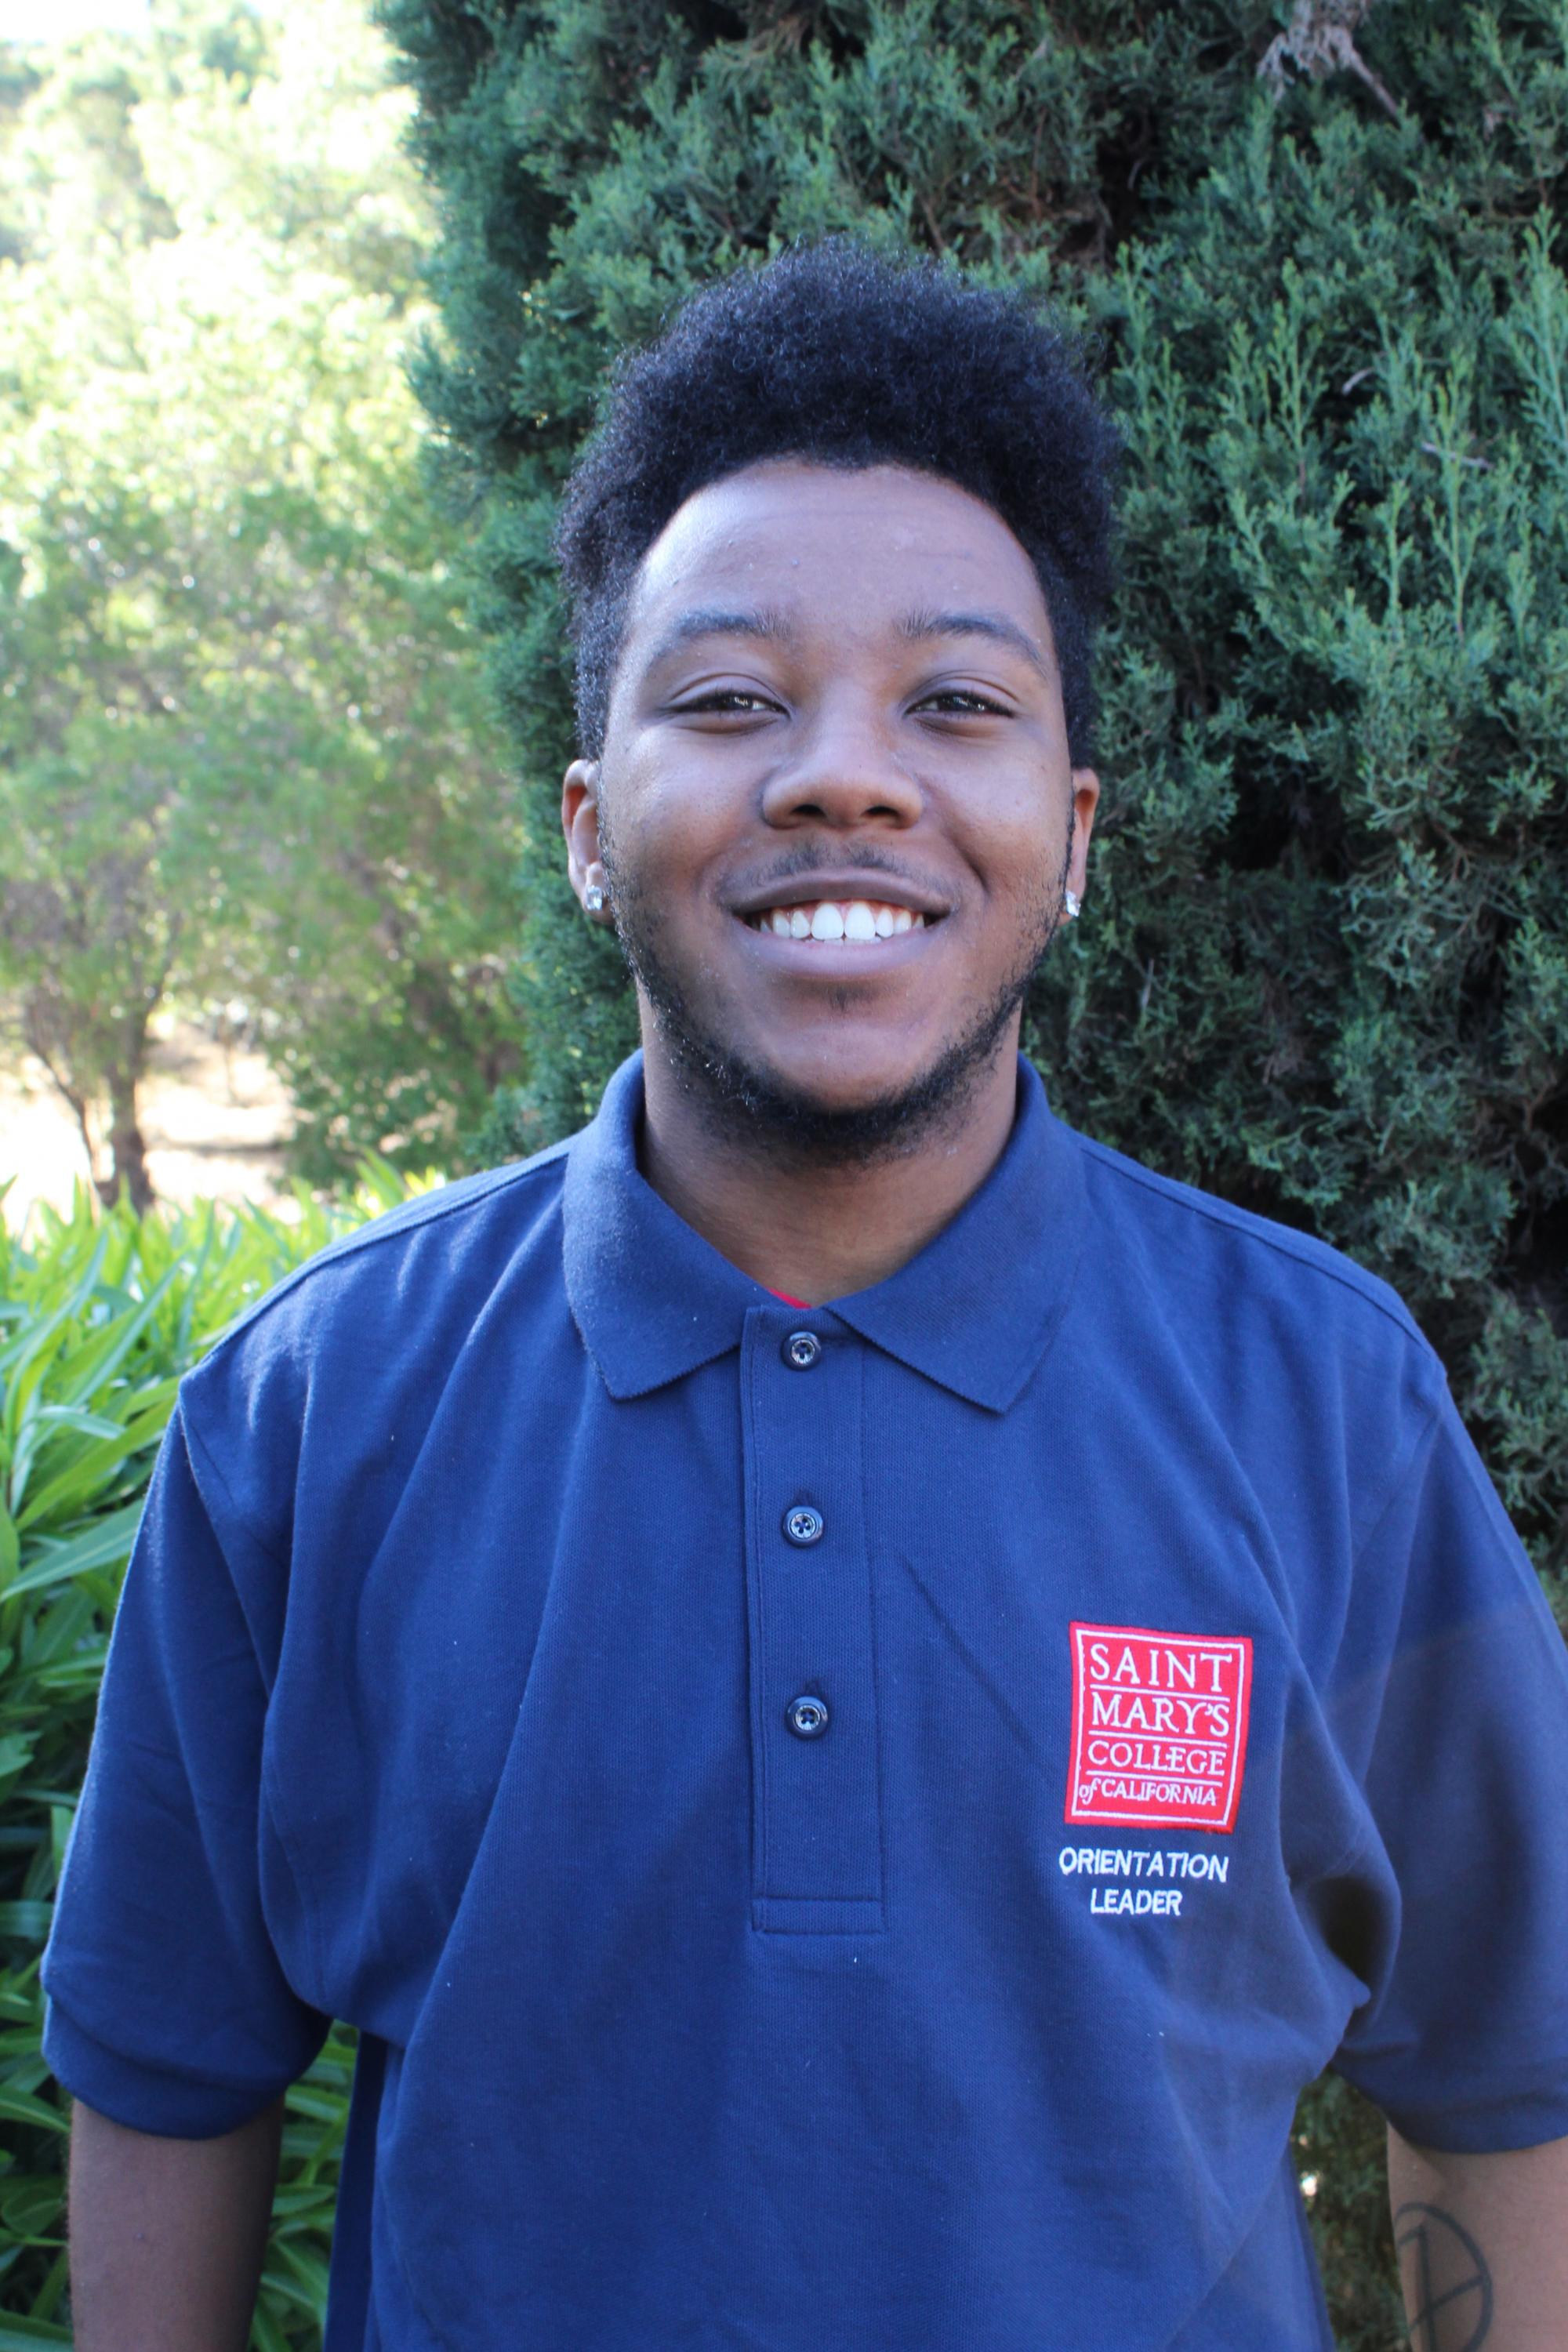 What's up everyone! My name is Collin Fisher and my hometown is San Ramon, California. I am a third year junior doing a split major of Ethnic Studies and Counseling Psychology with a minor in Dance. I'm involved in the Black Student Union here on campus. Looking forward to meeting you all and congratulations on becoming a Gael!